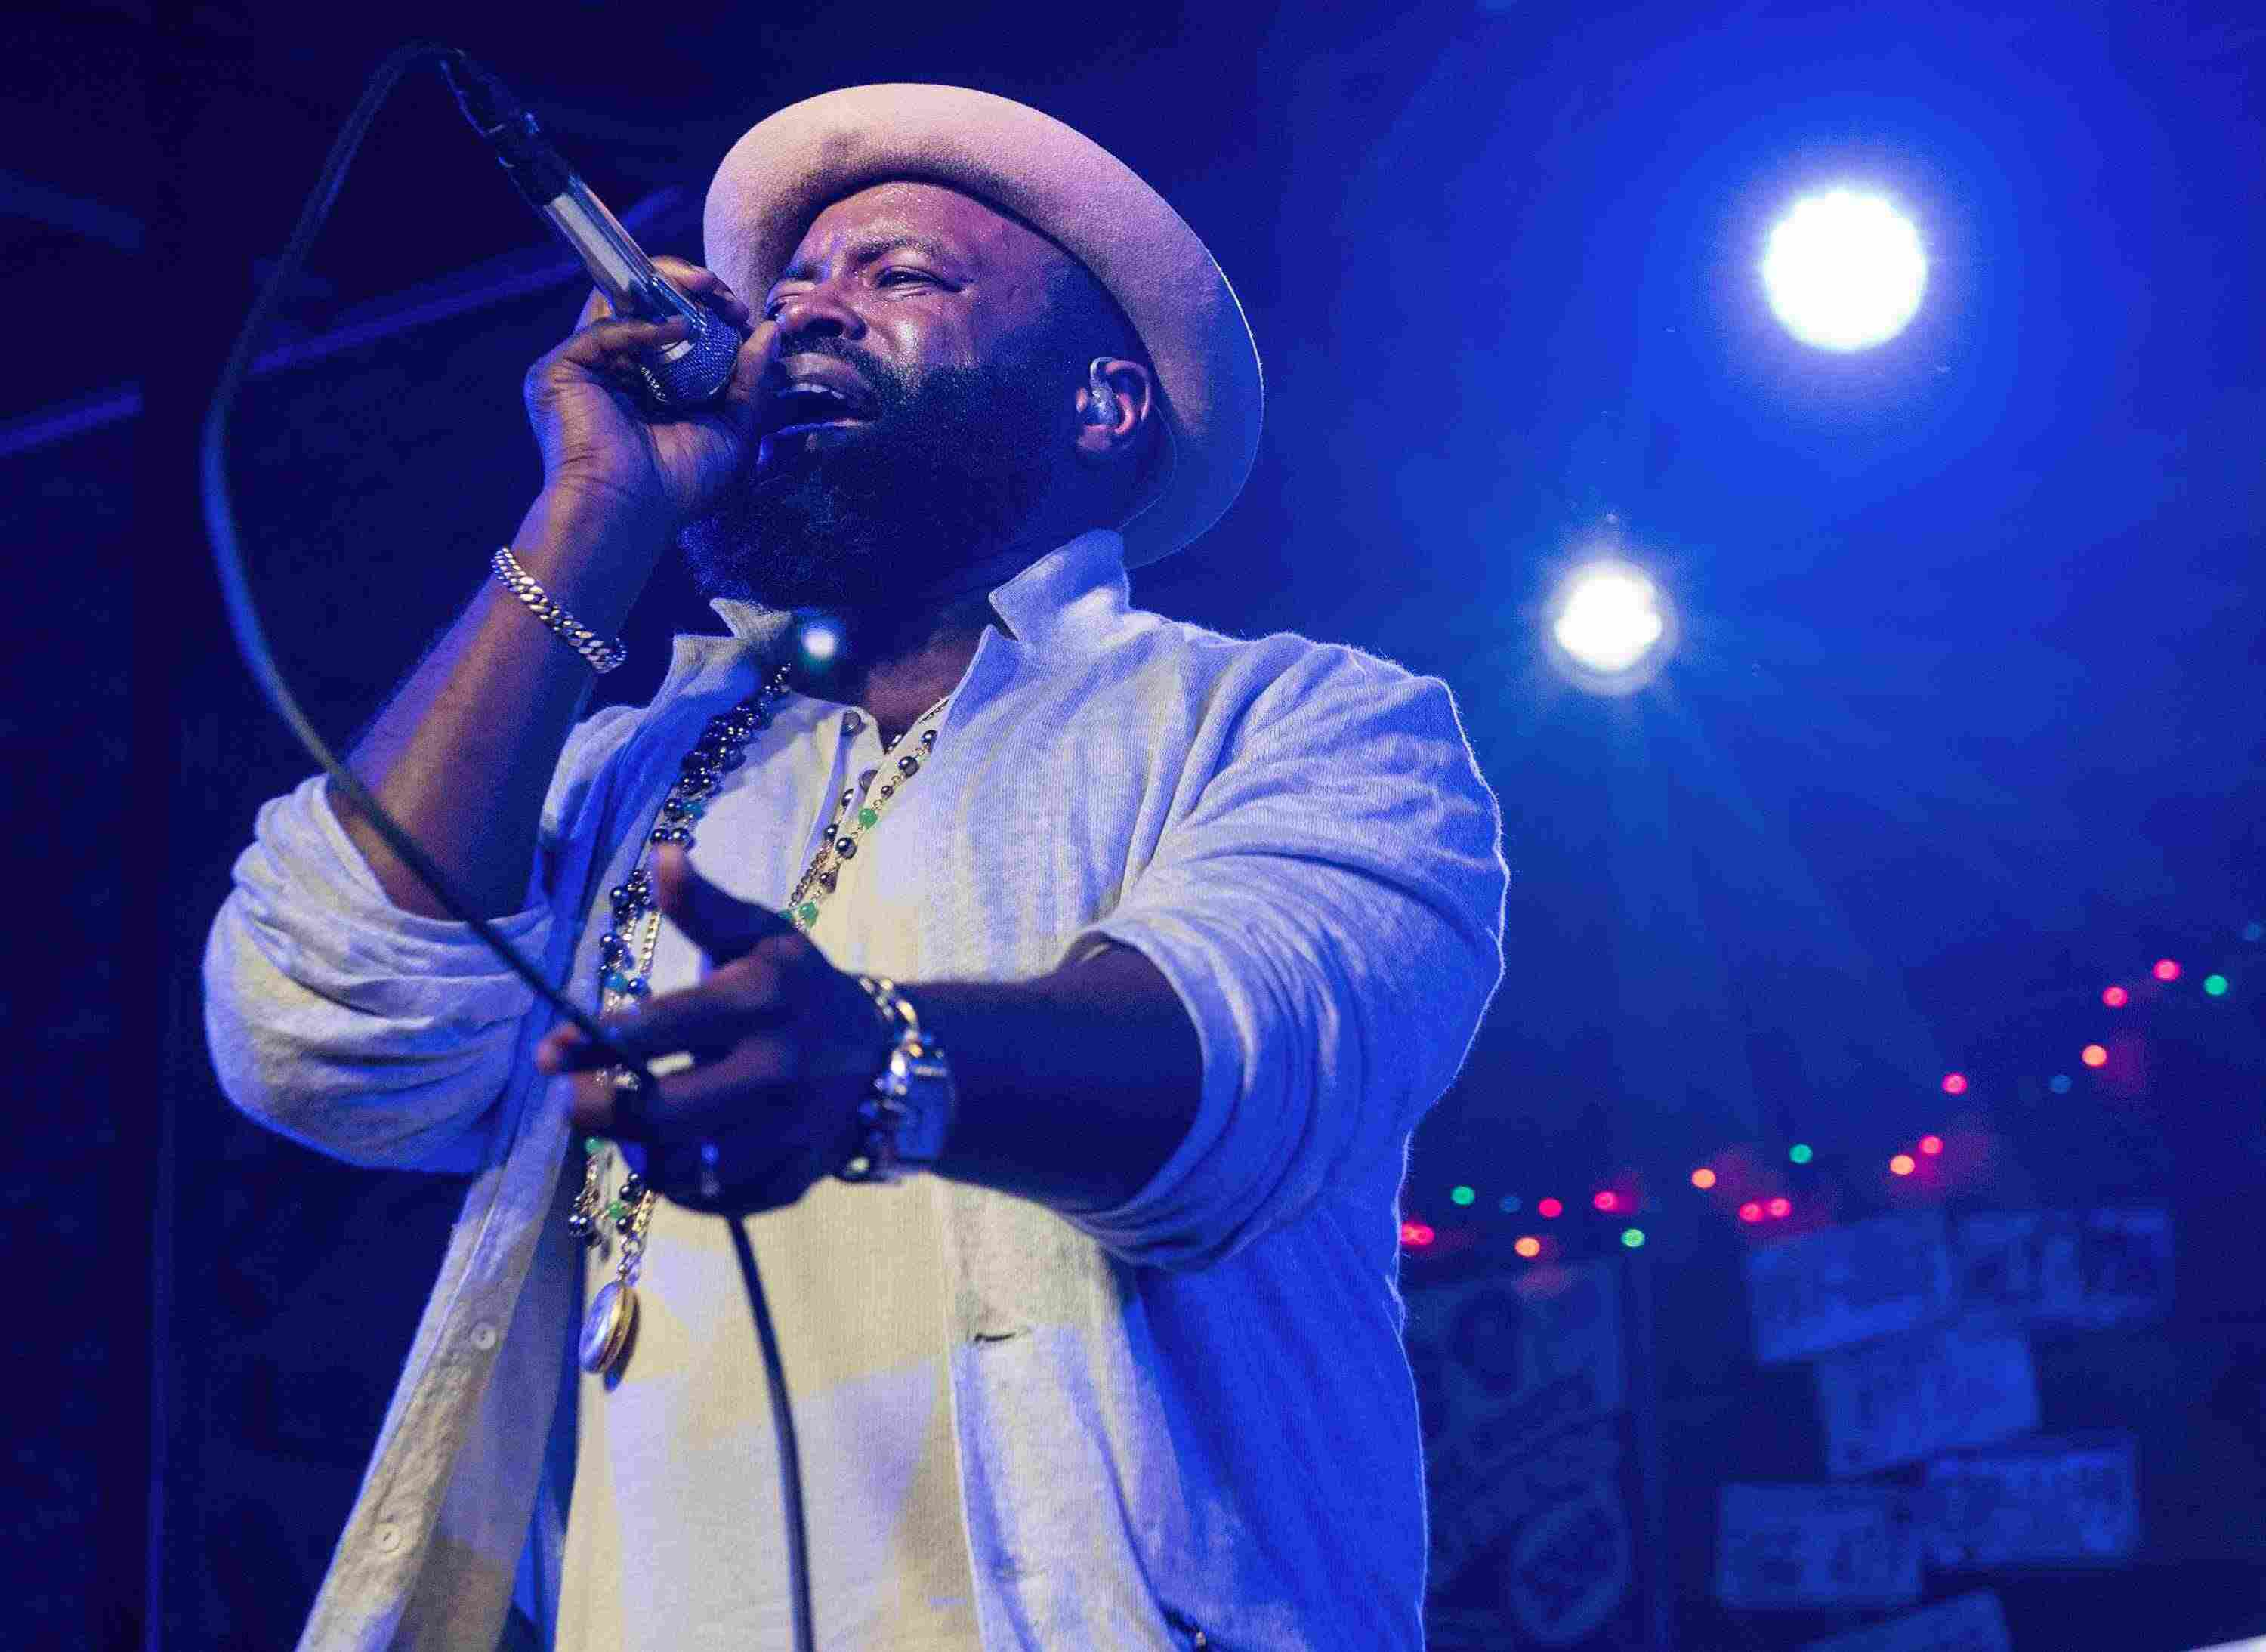 Roots Show at SXSW in Austin Is Canceled After Bomb Threat